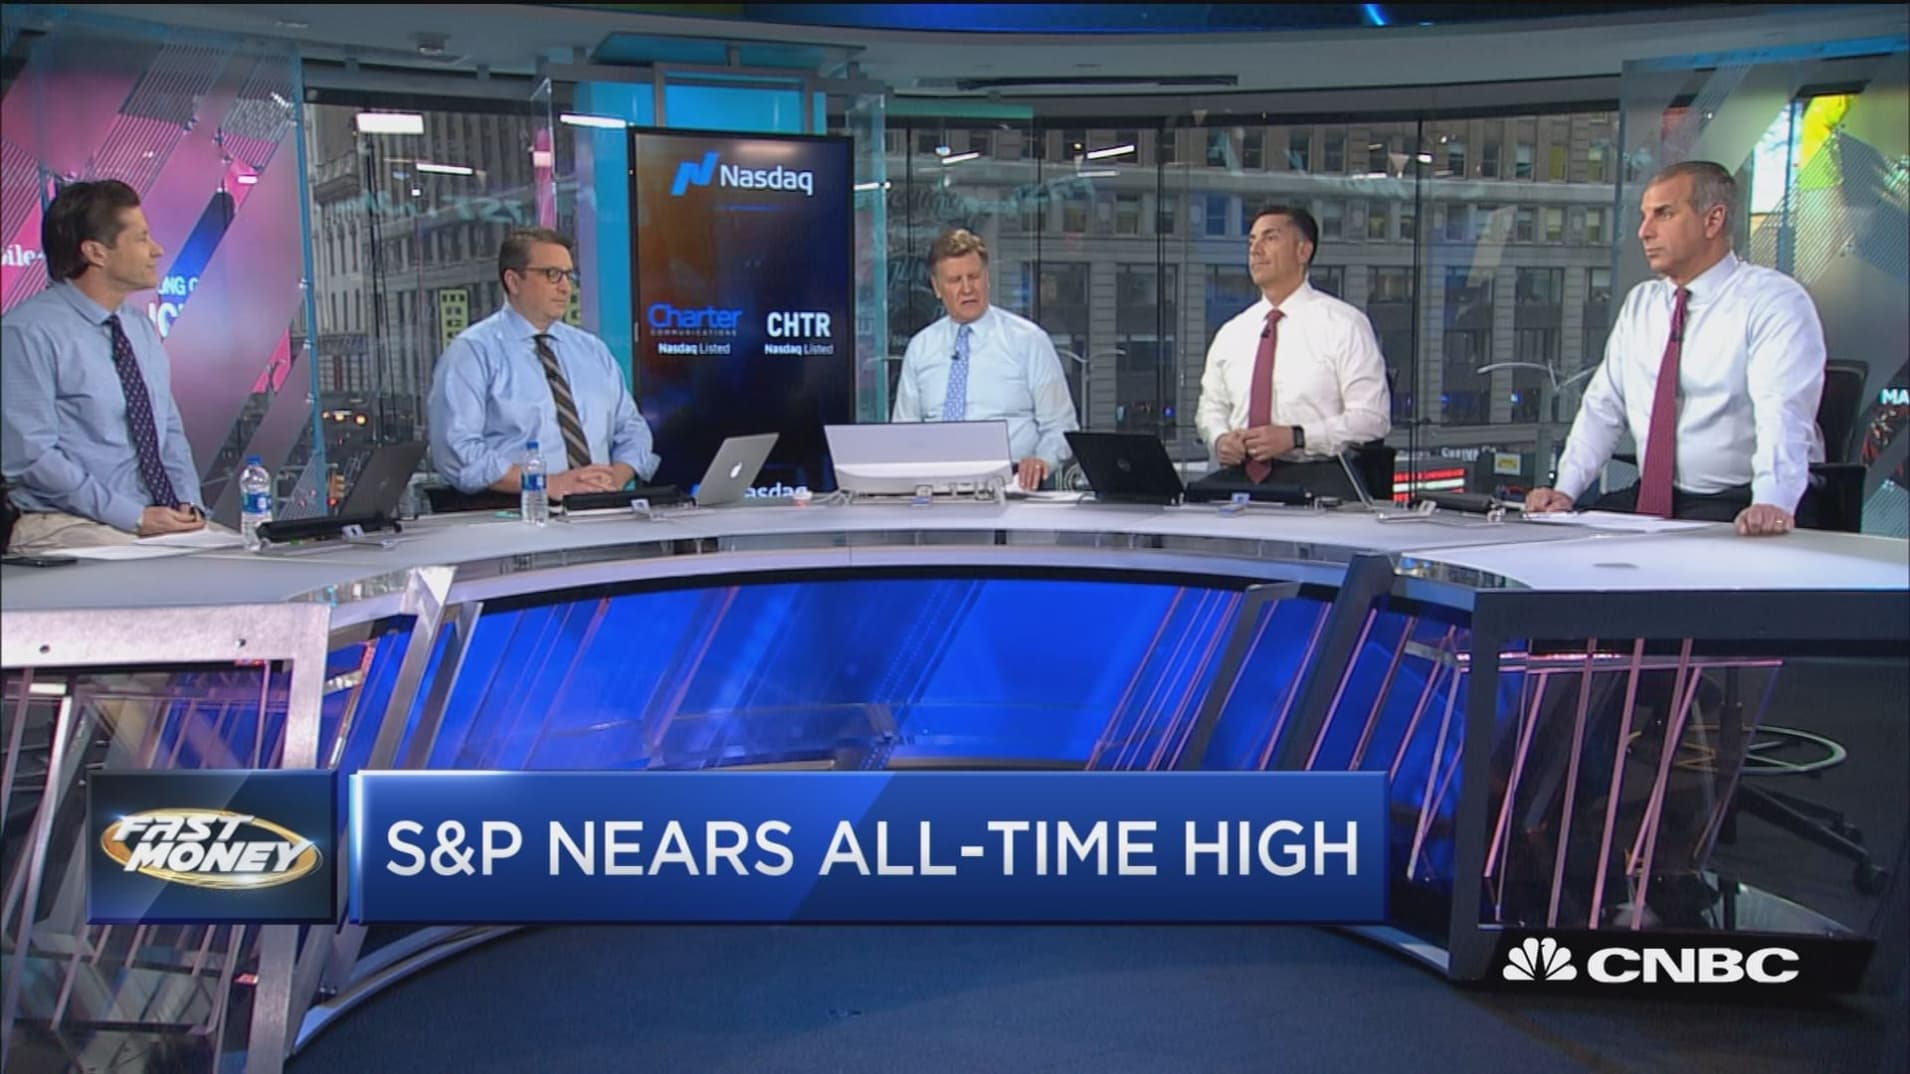 The S&P's within striking distance of all-time highs, here's what traders are buying to catch rally